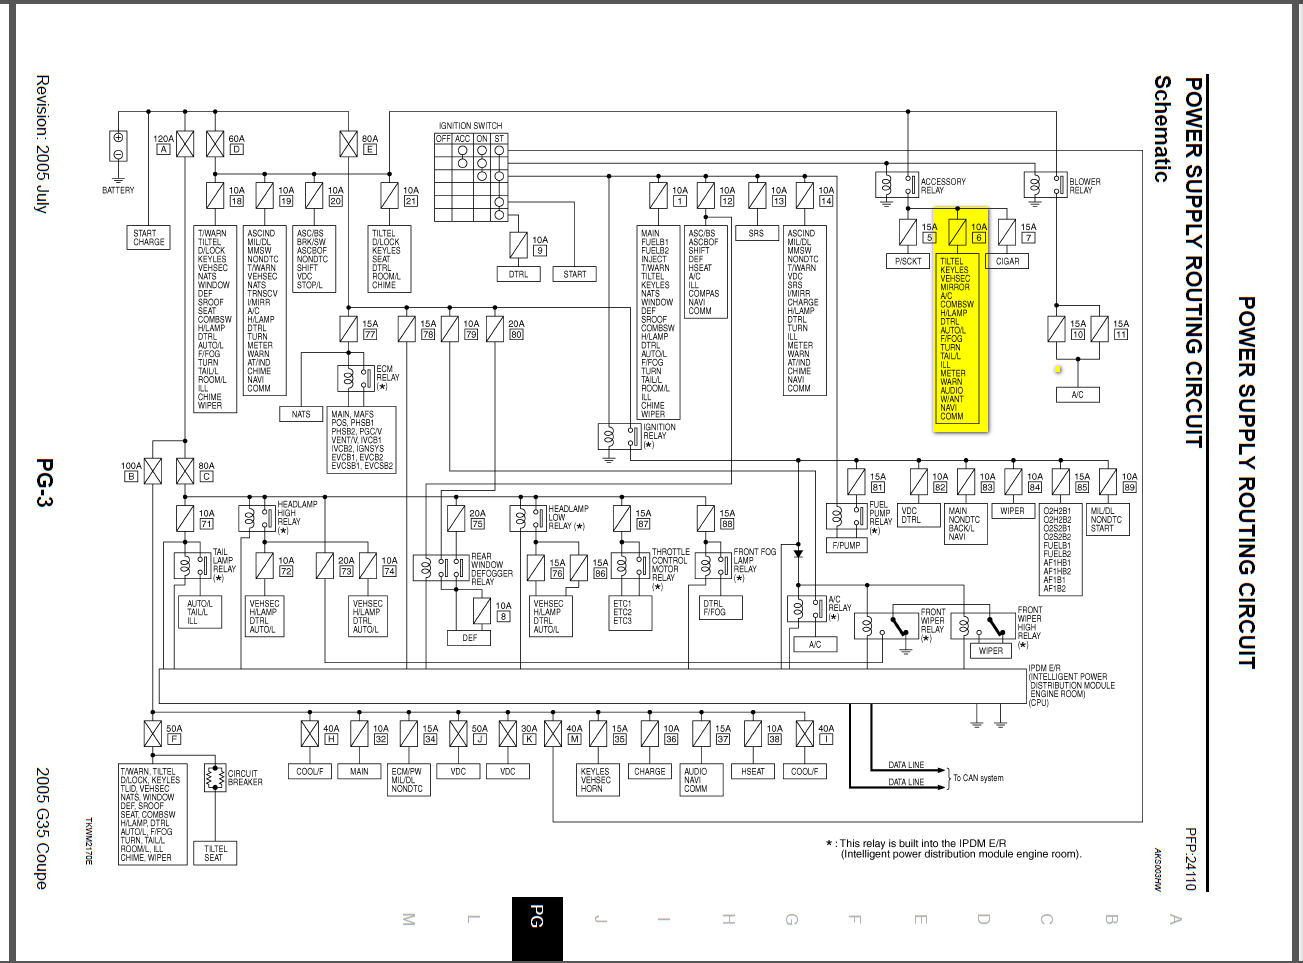 2006 Nissan Titan Fuse Box Diagram Wiring Library Toyota Sienna Window 2000 Xterra Speaker Efcaviation Com 2009 Sentra